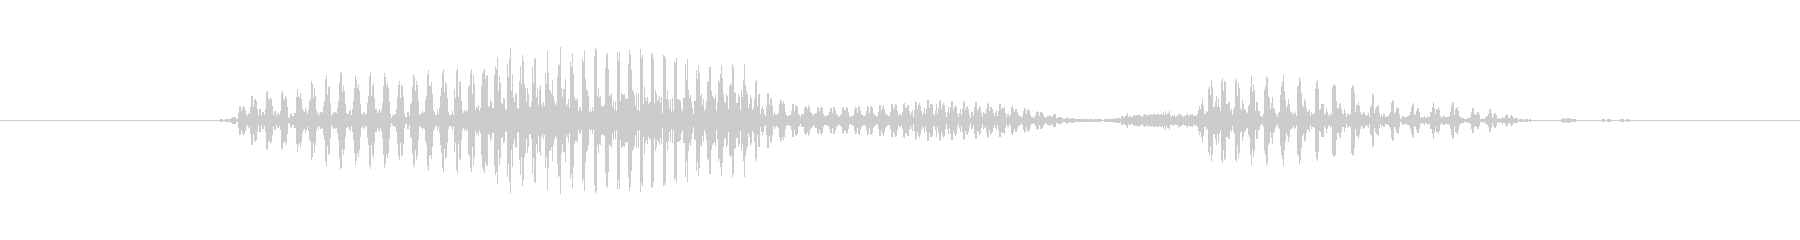 Miyagi Prefecture's unreproduced waveform